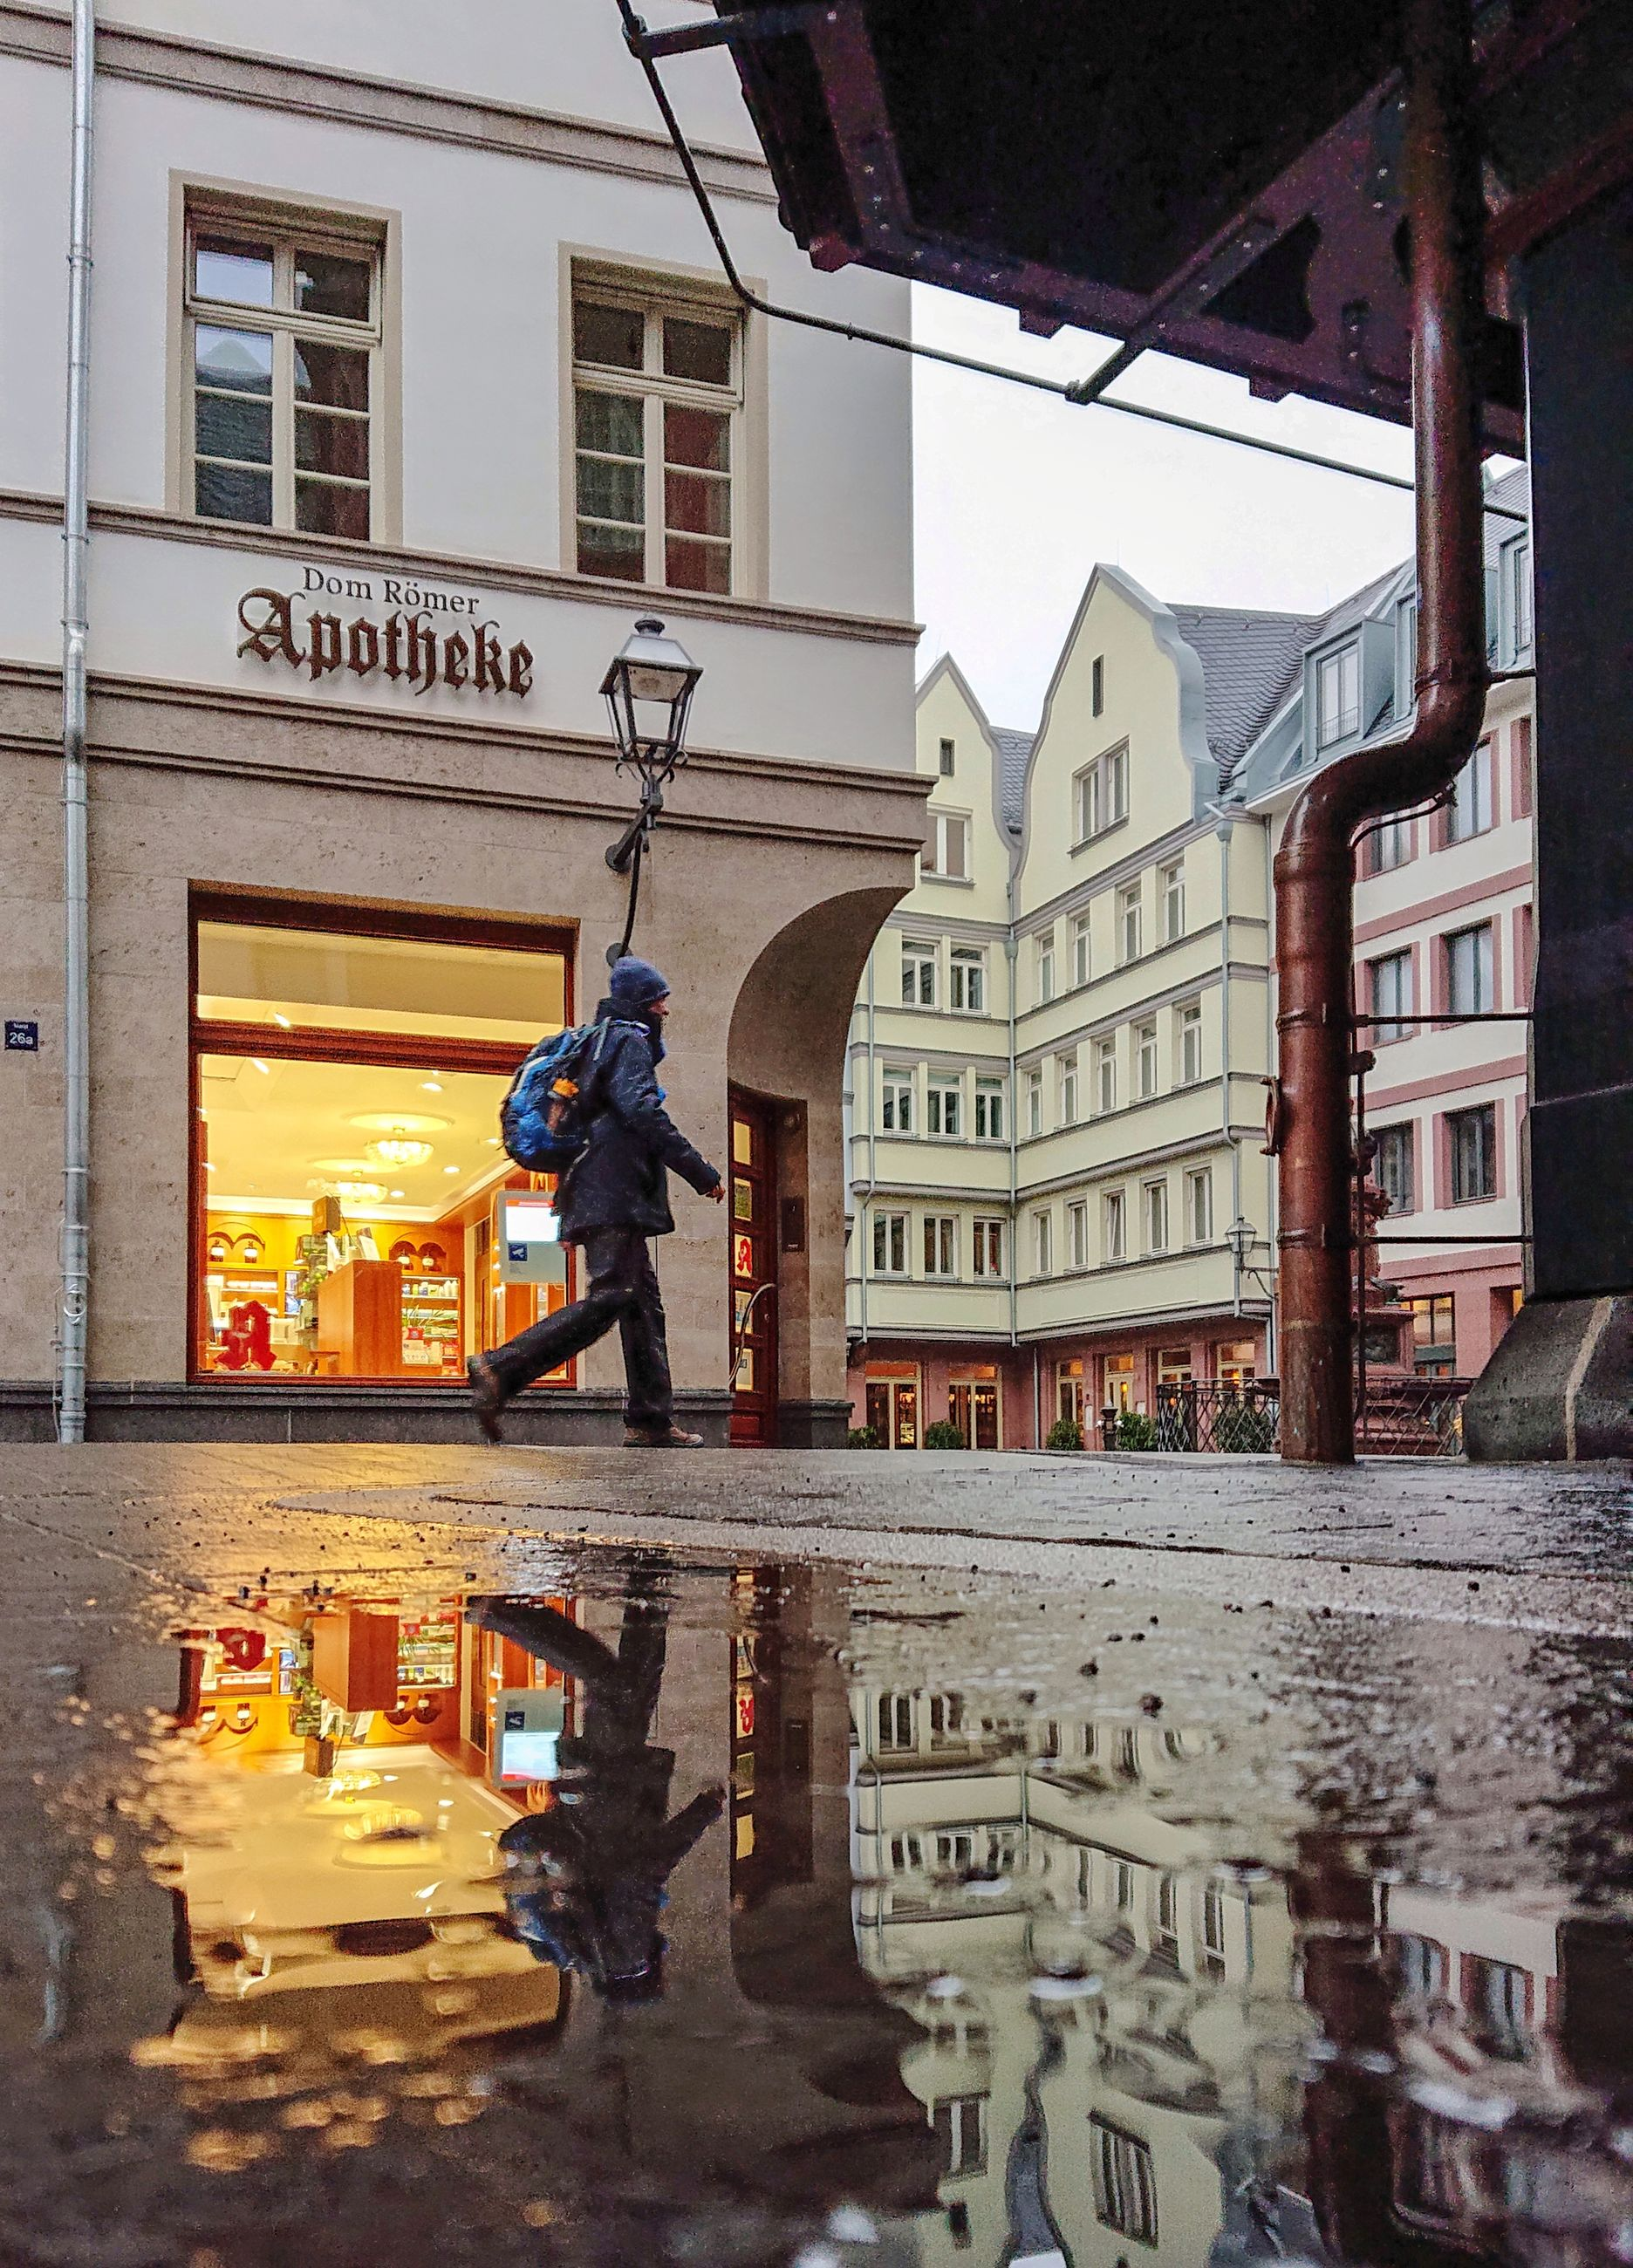 building exterior, architecture, built structure, city, one person, men, real people, full length, building, water, text, street, reflection, day, holding, standing, nature, incidental people, outdoors